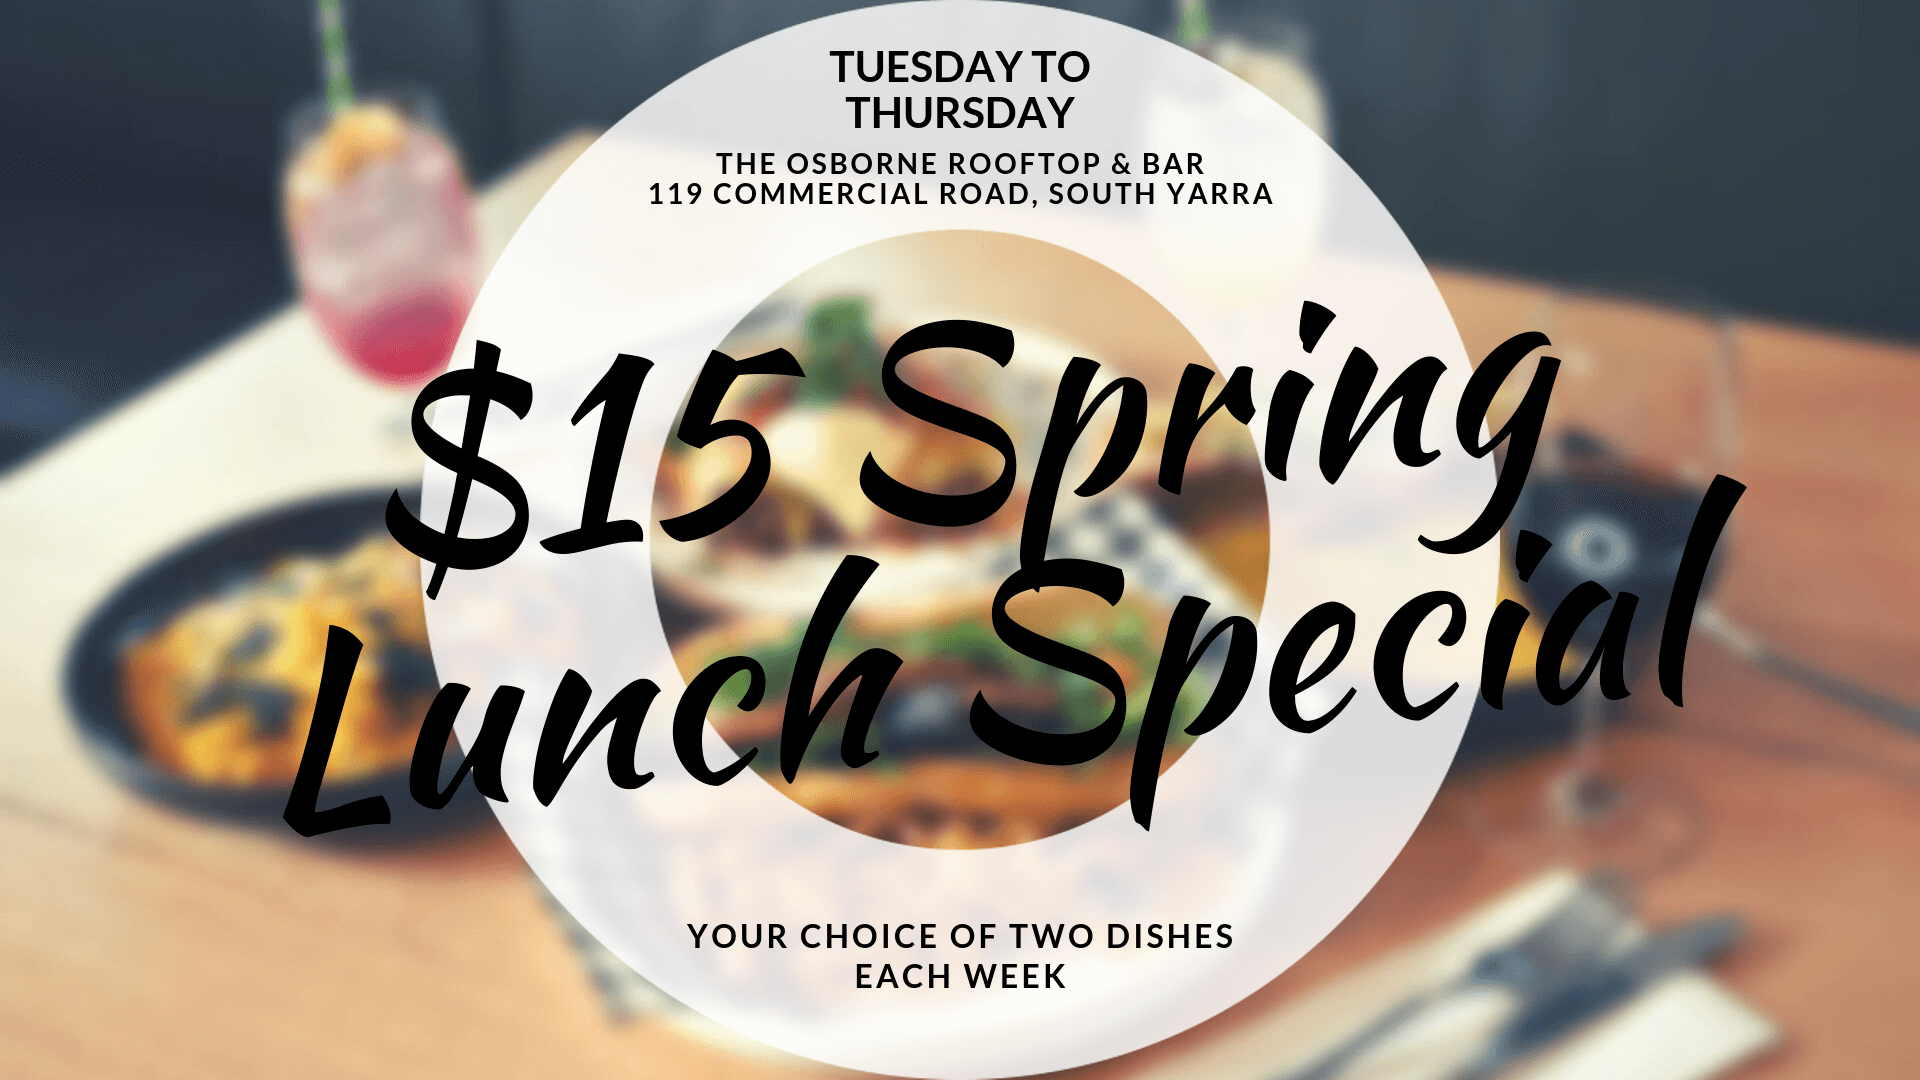 $15 Spring Lunch Special - Osborne Rooftop & Bar